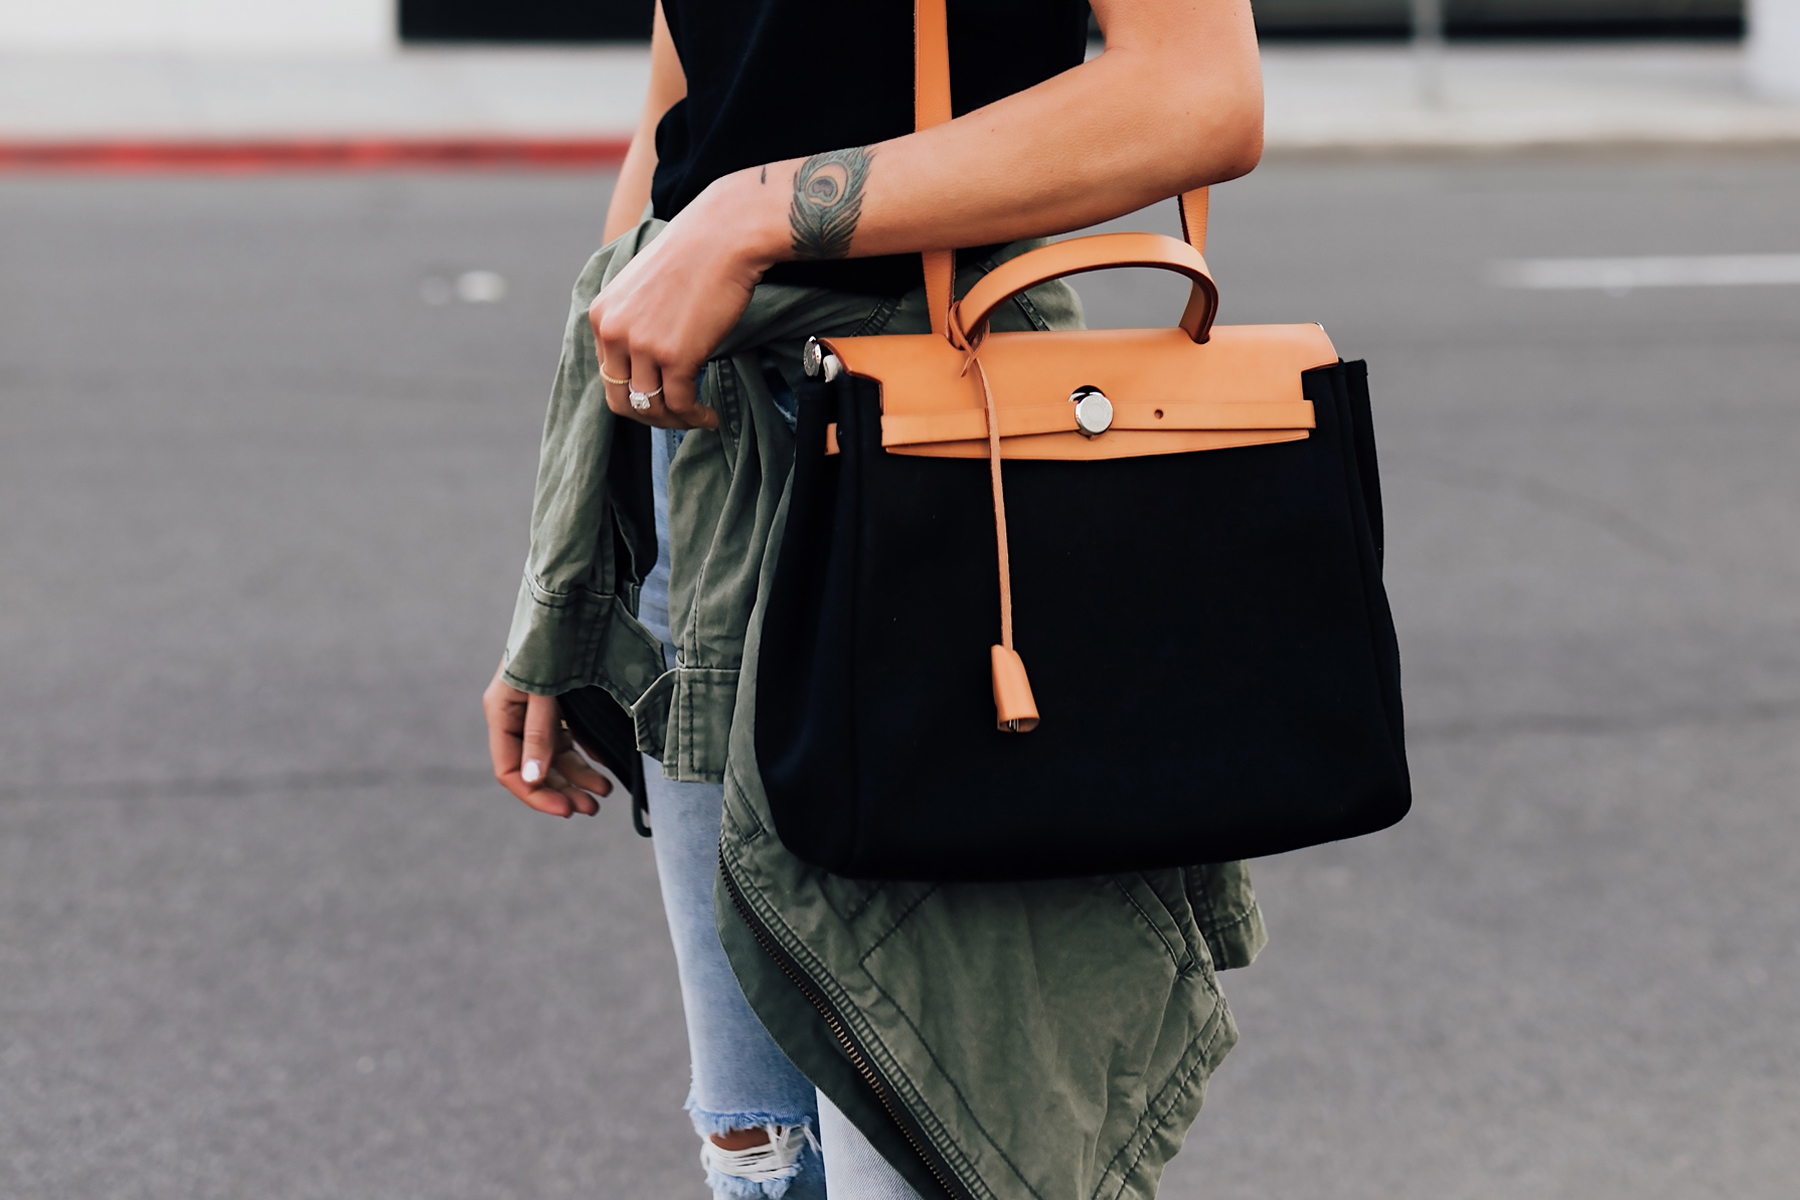 Woman Wearing Black Top Jeans Green Utility Jadcket eBay Authenticate Handbags Vintage Hermes Herbag Black Tan Handbag Fashion Jackson San Diego Fashion Blogger Street Style